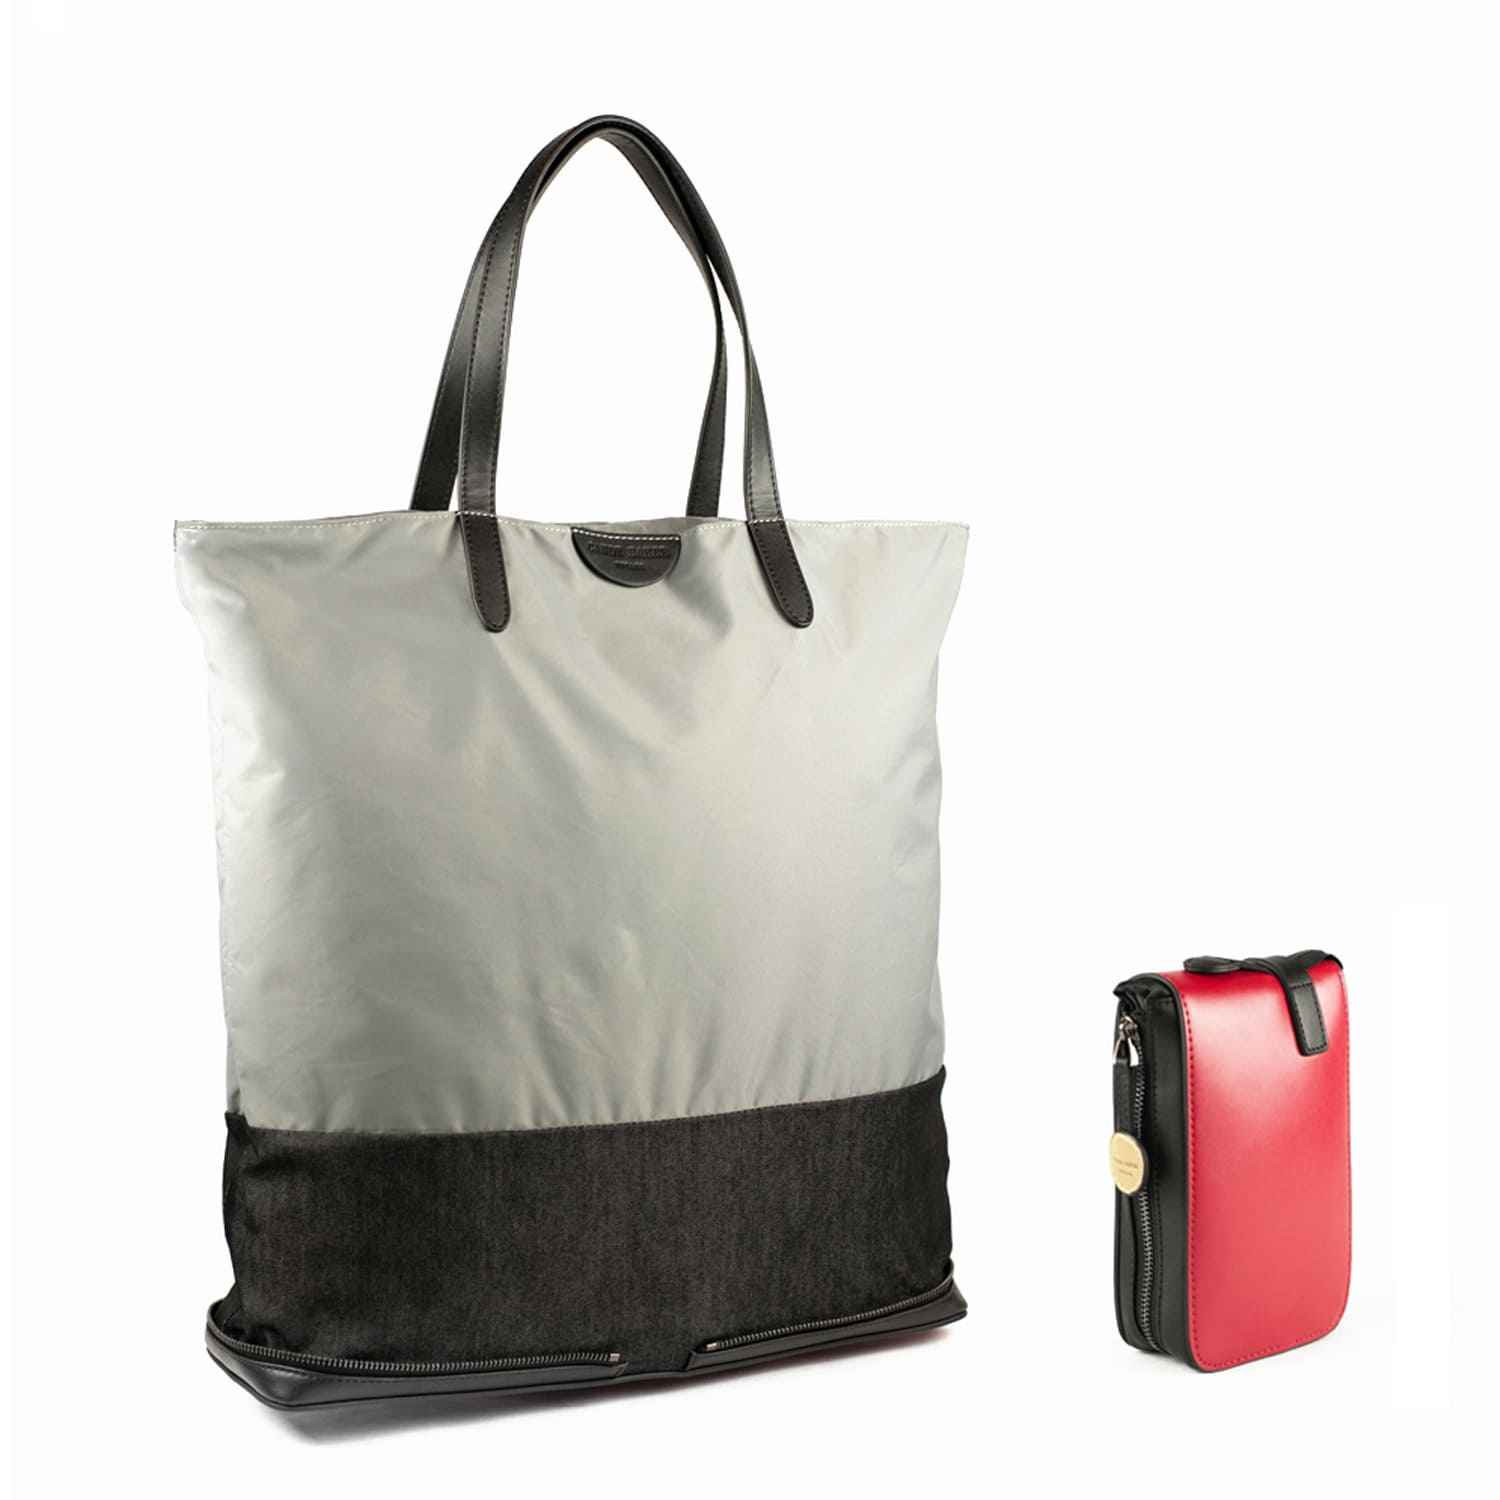 3a94d5f45 London Fold Up Leather Tote Bag Grey | Charlie Baker London | Wolf ...